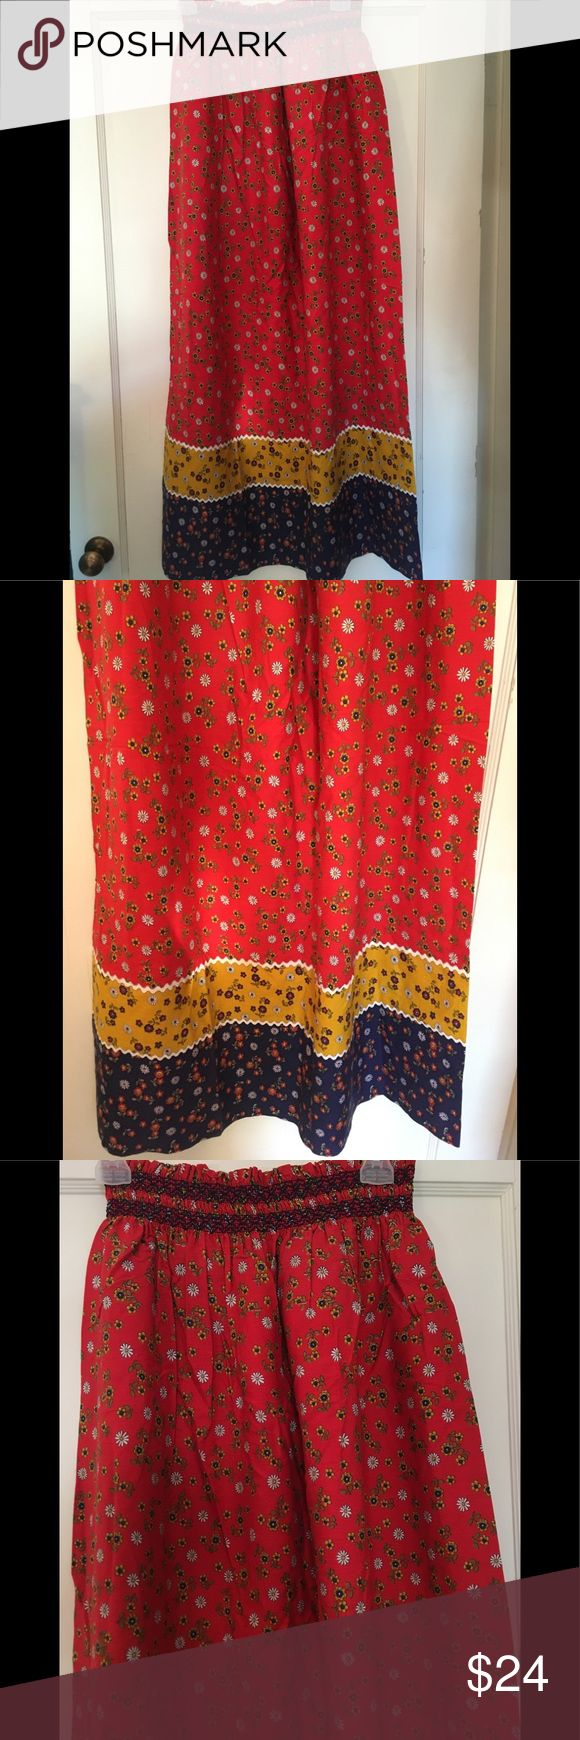 Handmade European Folk Skirt This vibrantly colored folk skirt is 13 inches across the waist and 42 inches long. The bottom is not hemmed so maybe shortened. The waste is elastic and has some give to it. Great colors of red, blue and mustard with flowers throughout make this a fun skirt for festivals and dress up Vintage Skirts Maxi